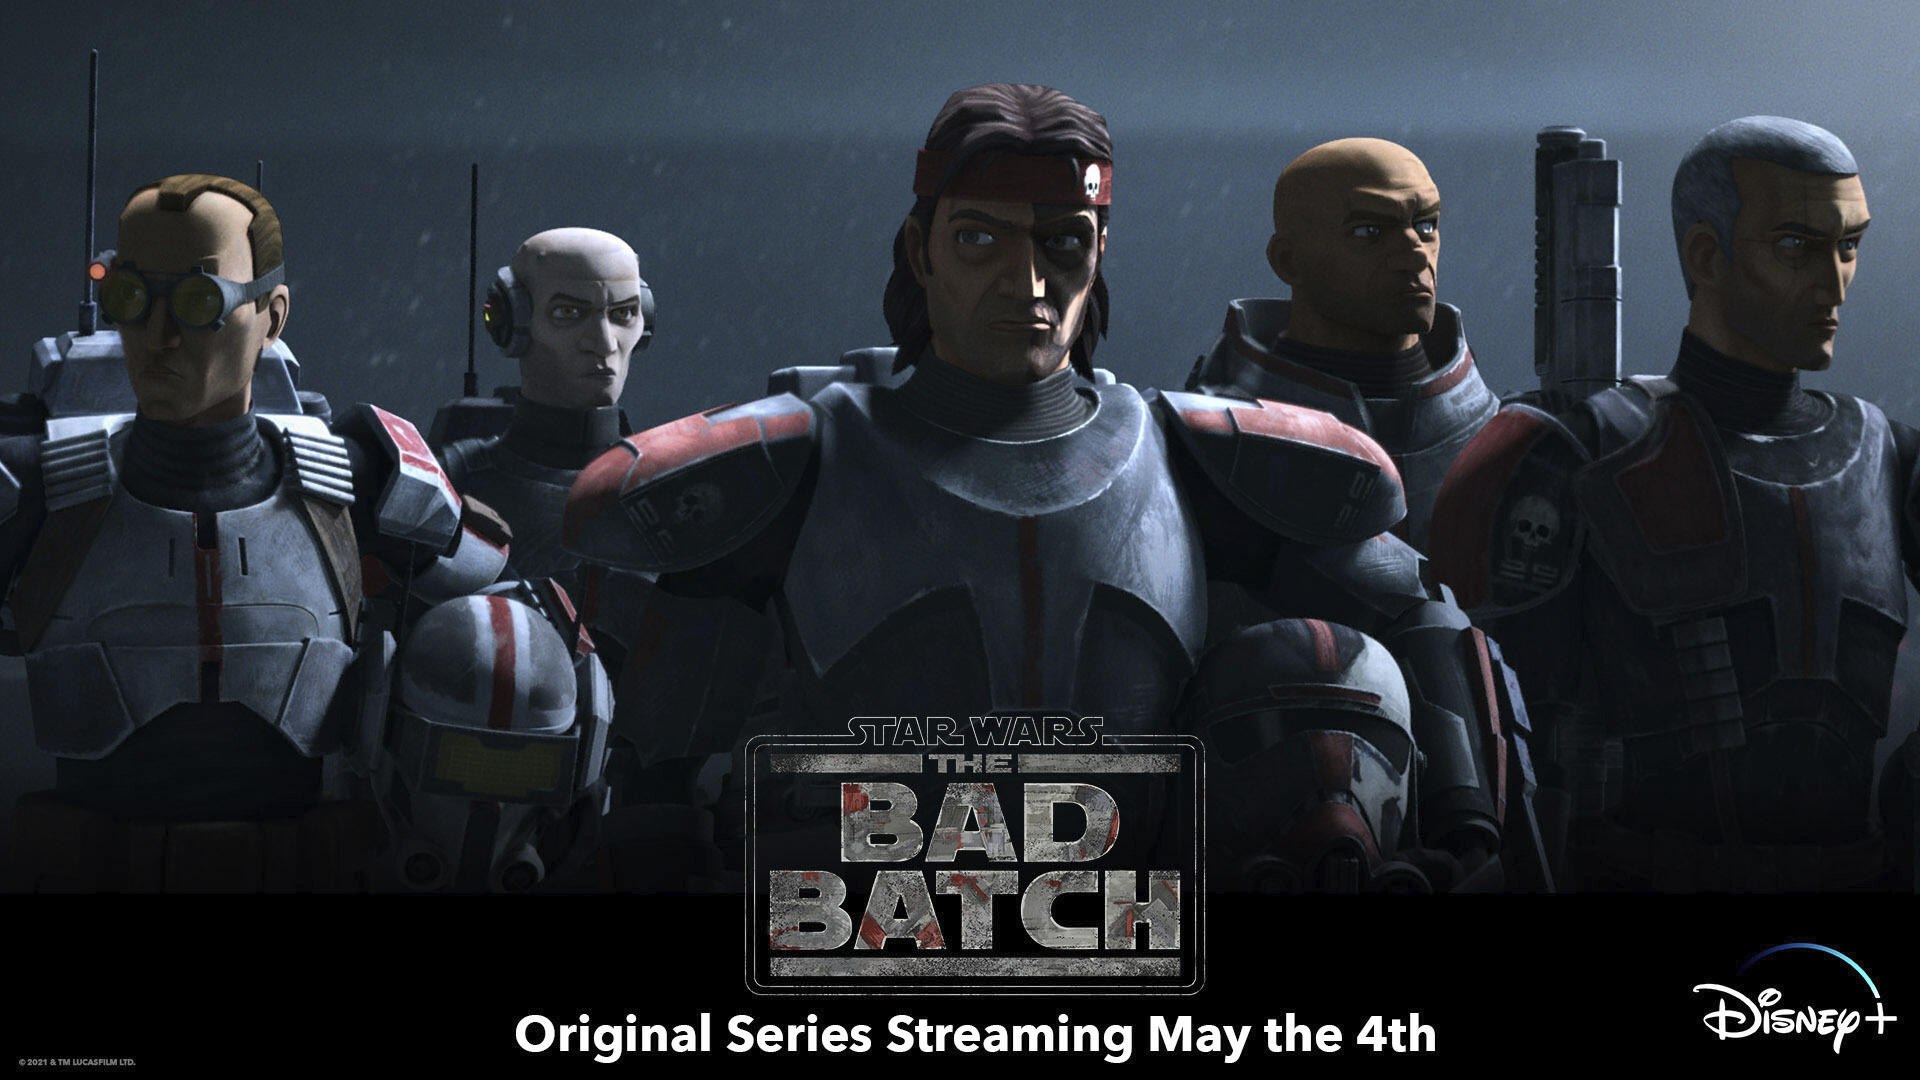 Star Wars: The Bad Batch premieres May 4 on Disney Plus - CNET